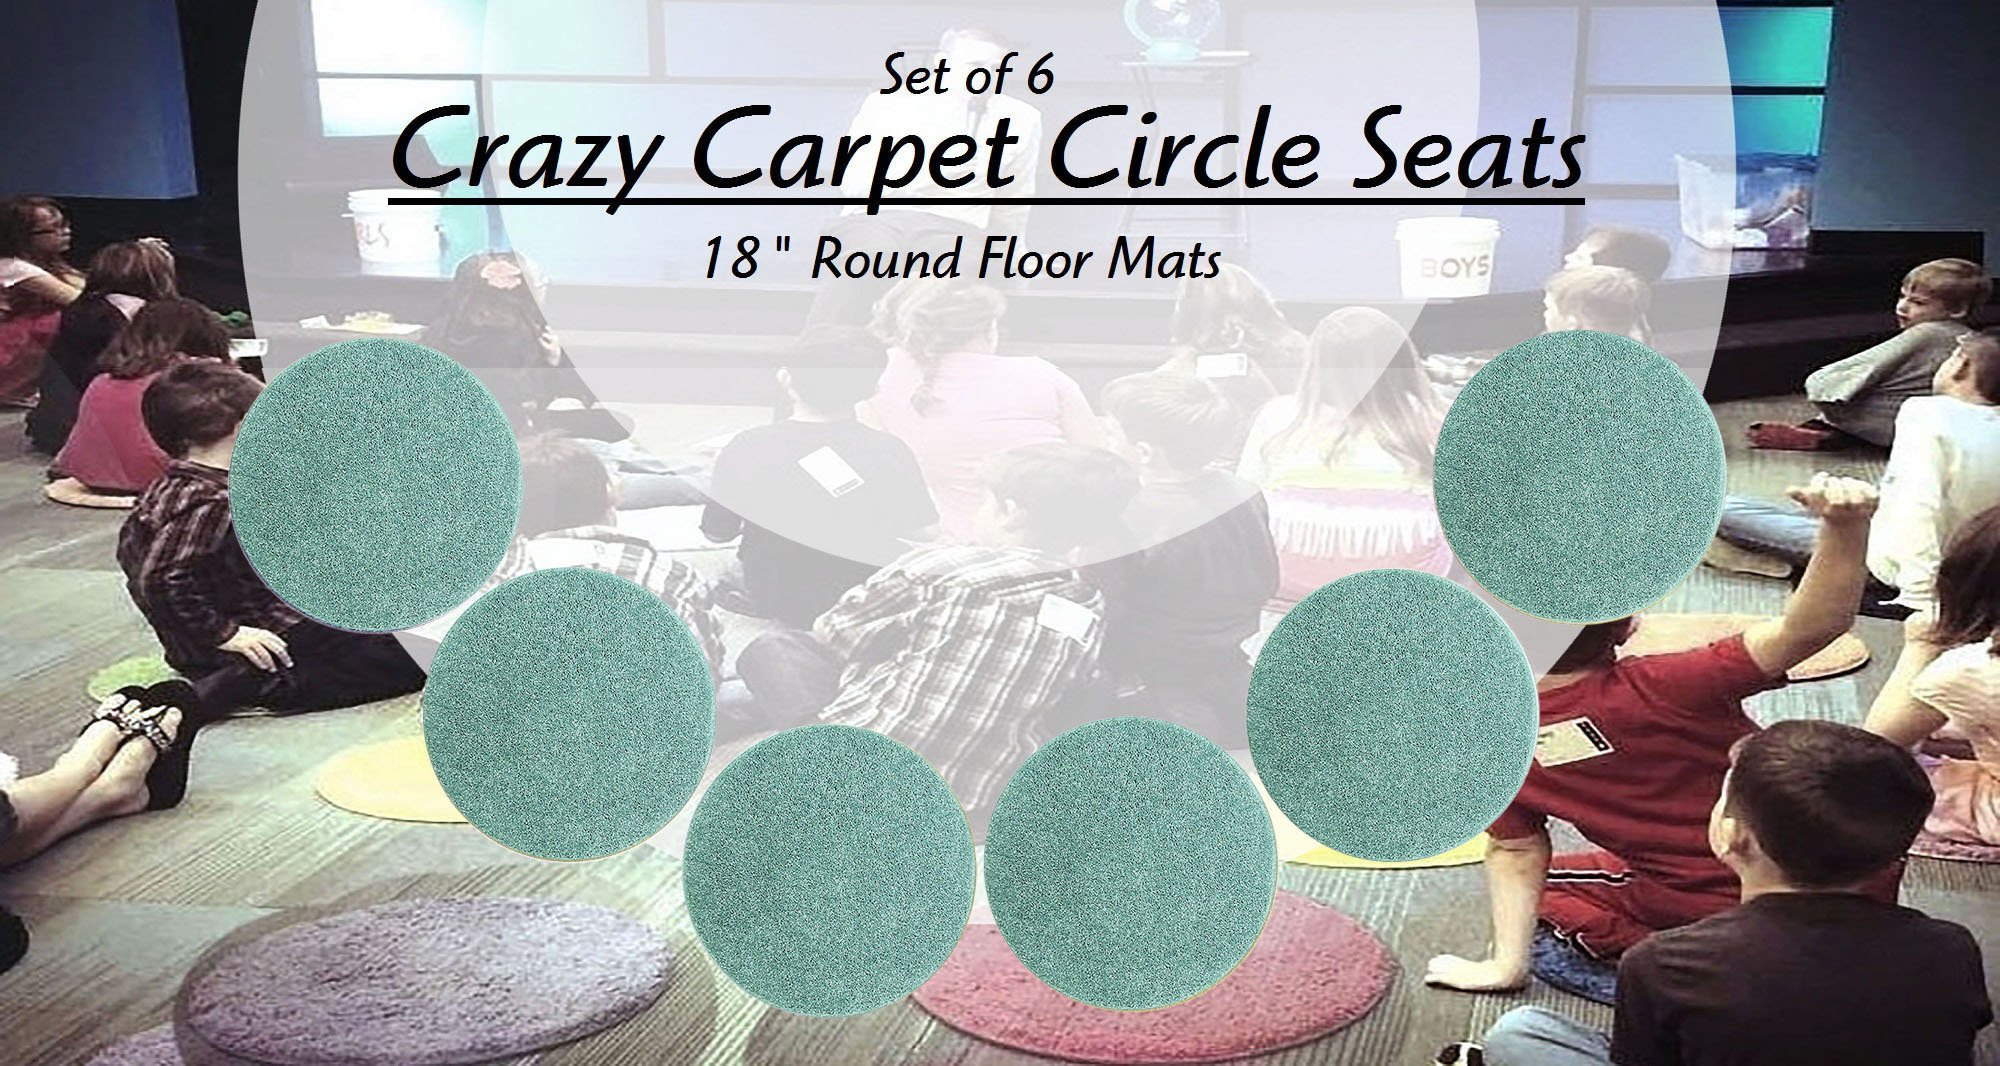 CHILDREN'S CRAZY CARPET CIRCLE SEATS - Soft Aqua Blue/Green 18'' Round Rug Mats – NEW Cut Pile